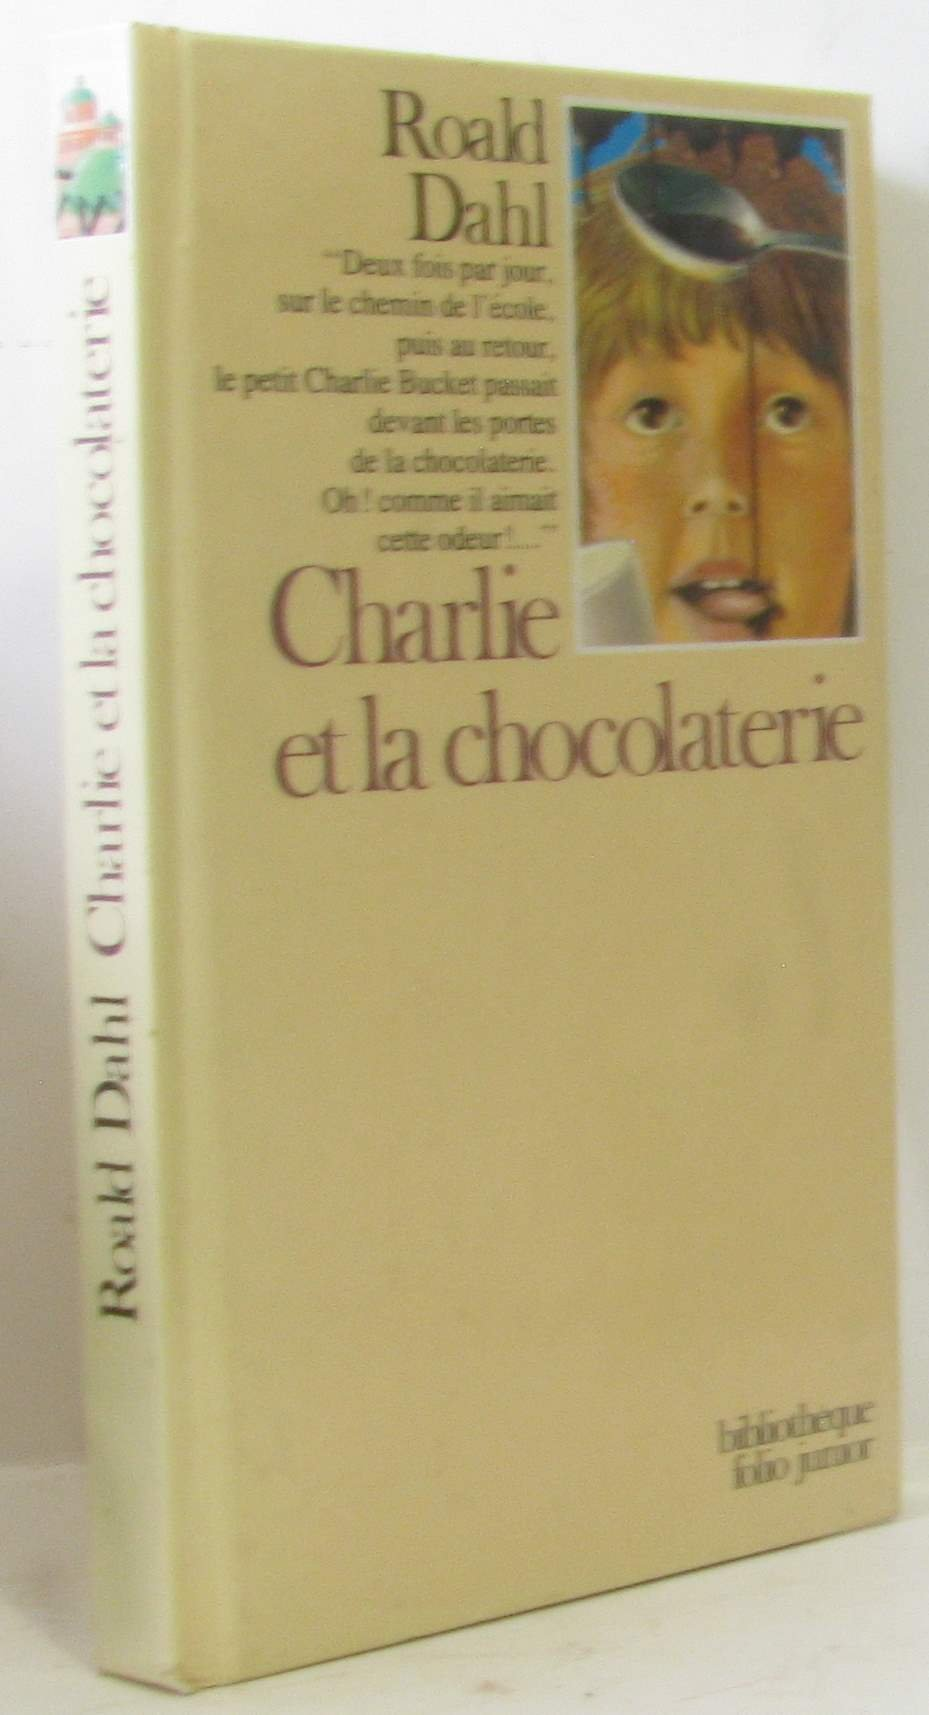 Charlie et la chocolaterie: Amazon.de: DAHL ROALD: Bücher